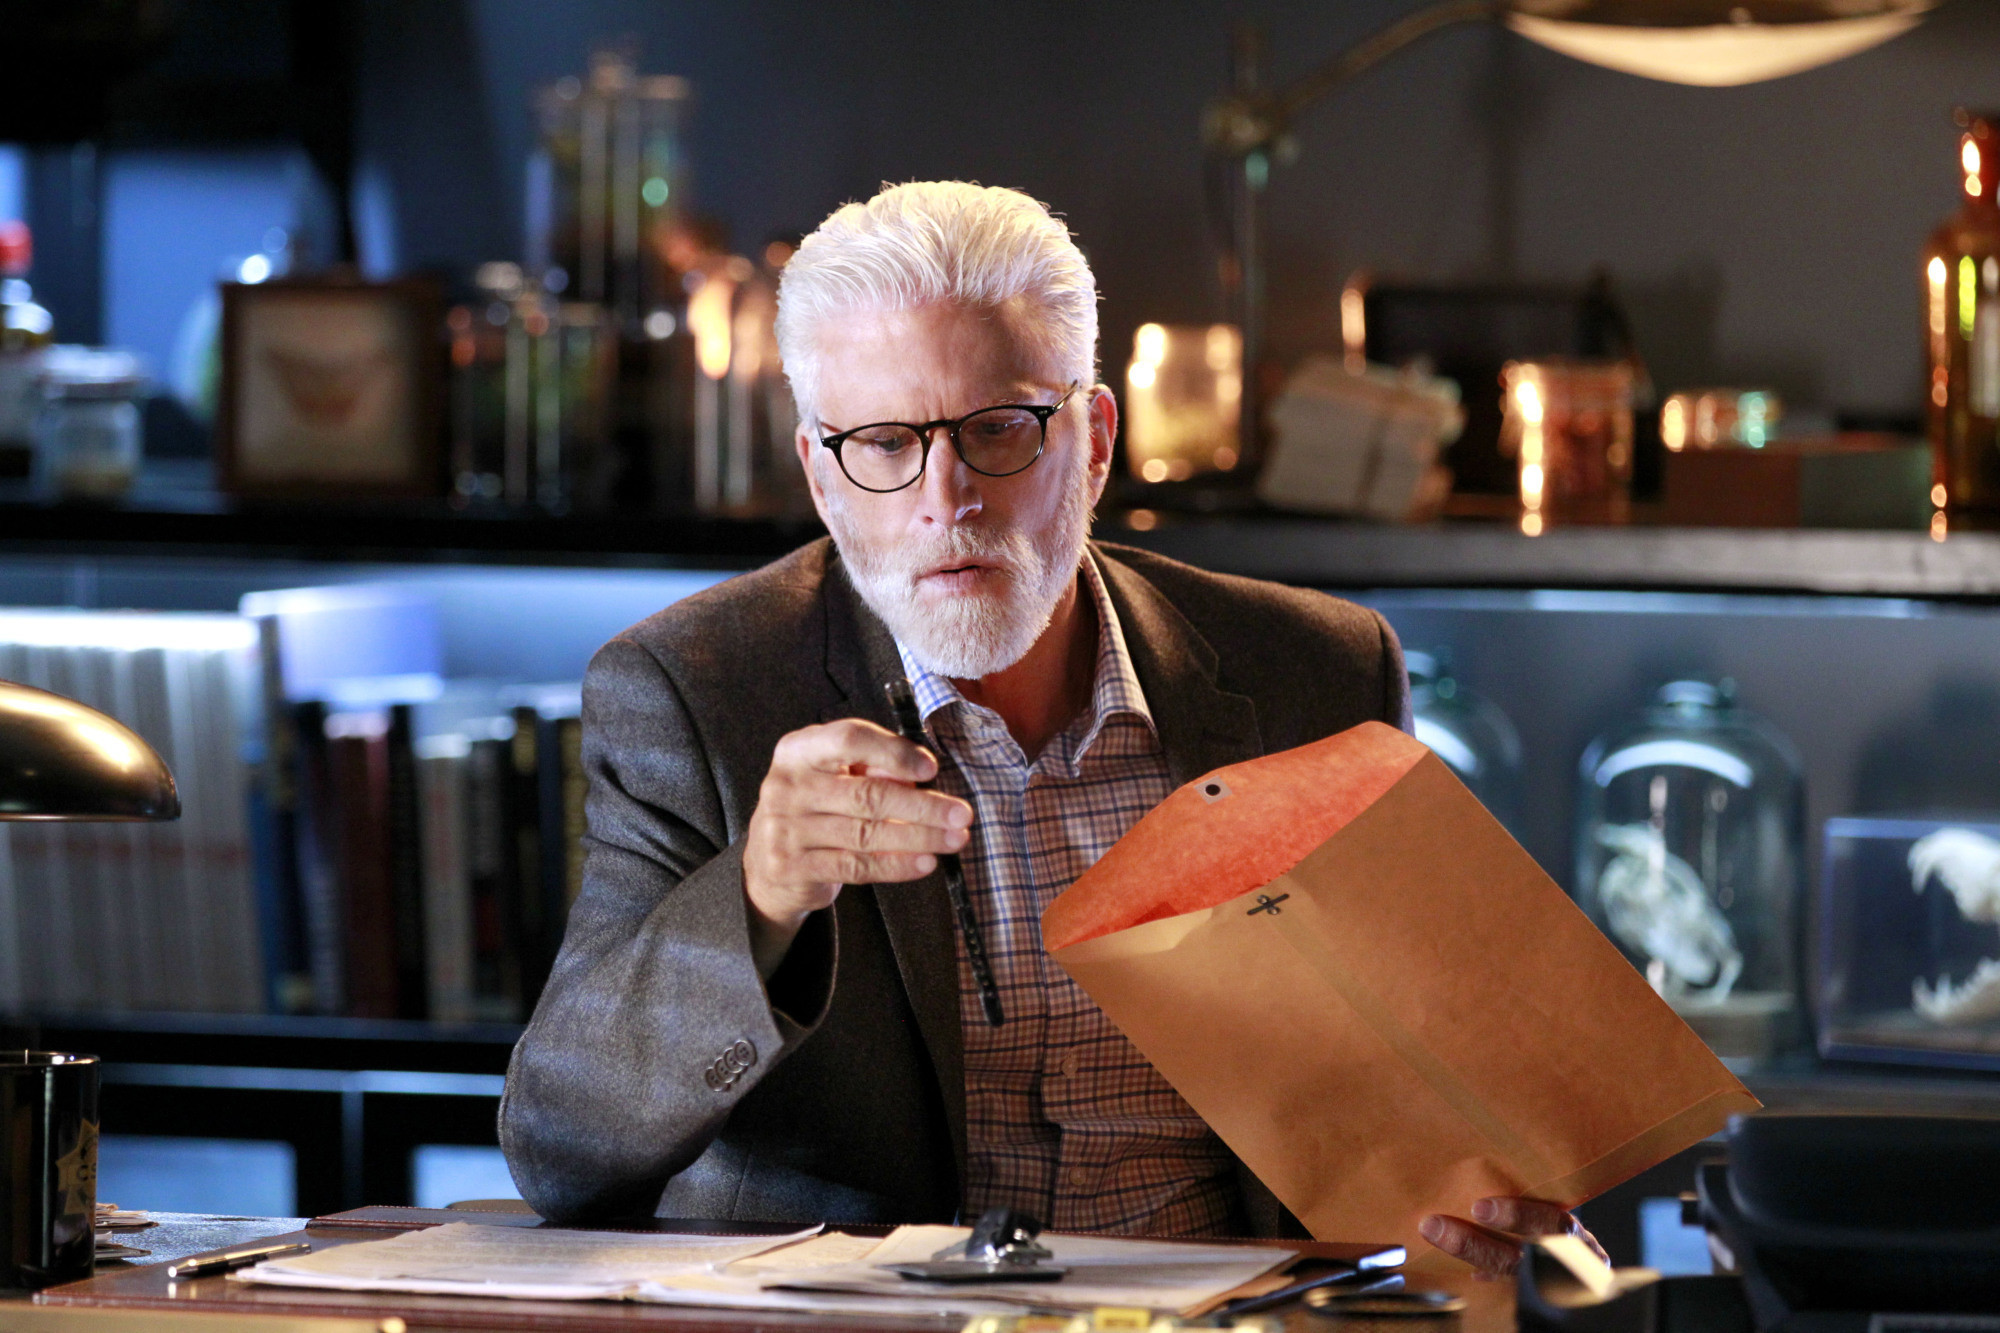 Goodbye, 'CSI': An 'interesting experiment' that lasted 16 years - Chicago Tribune